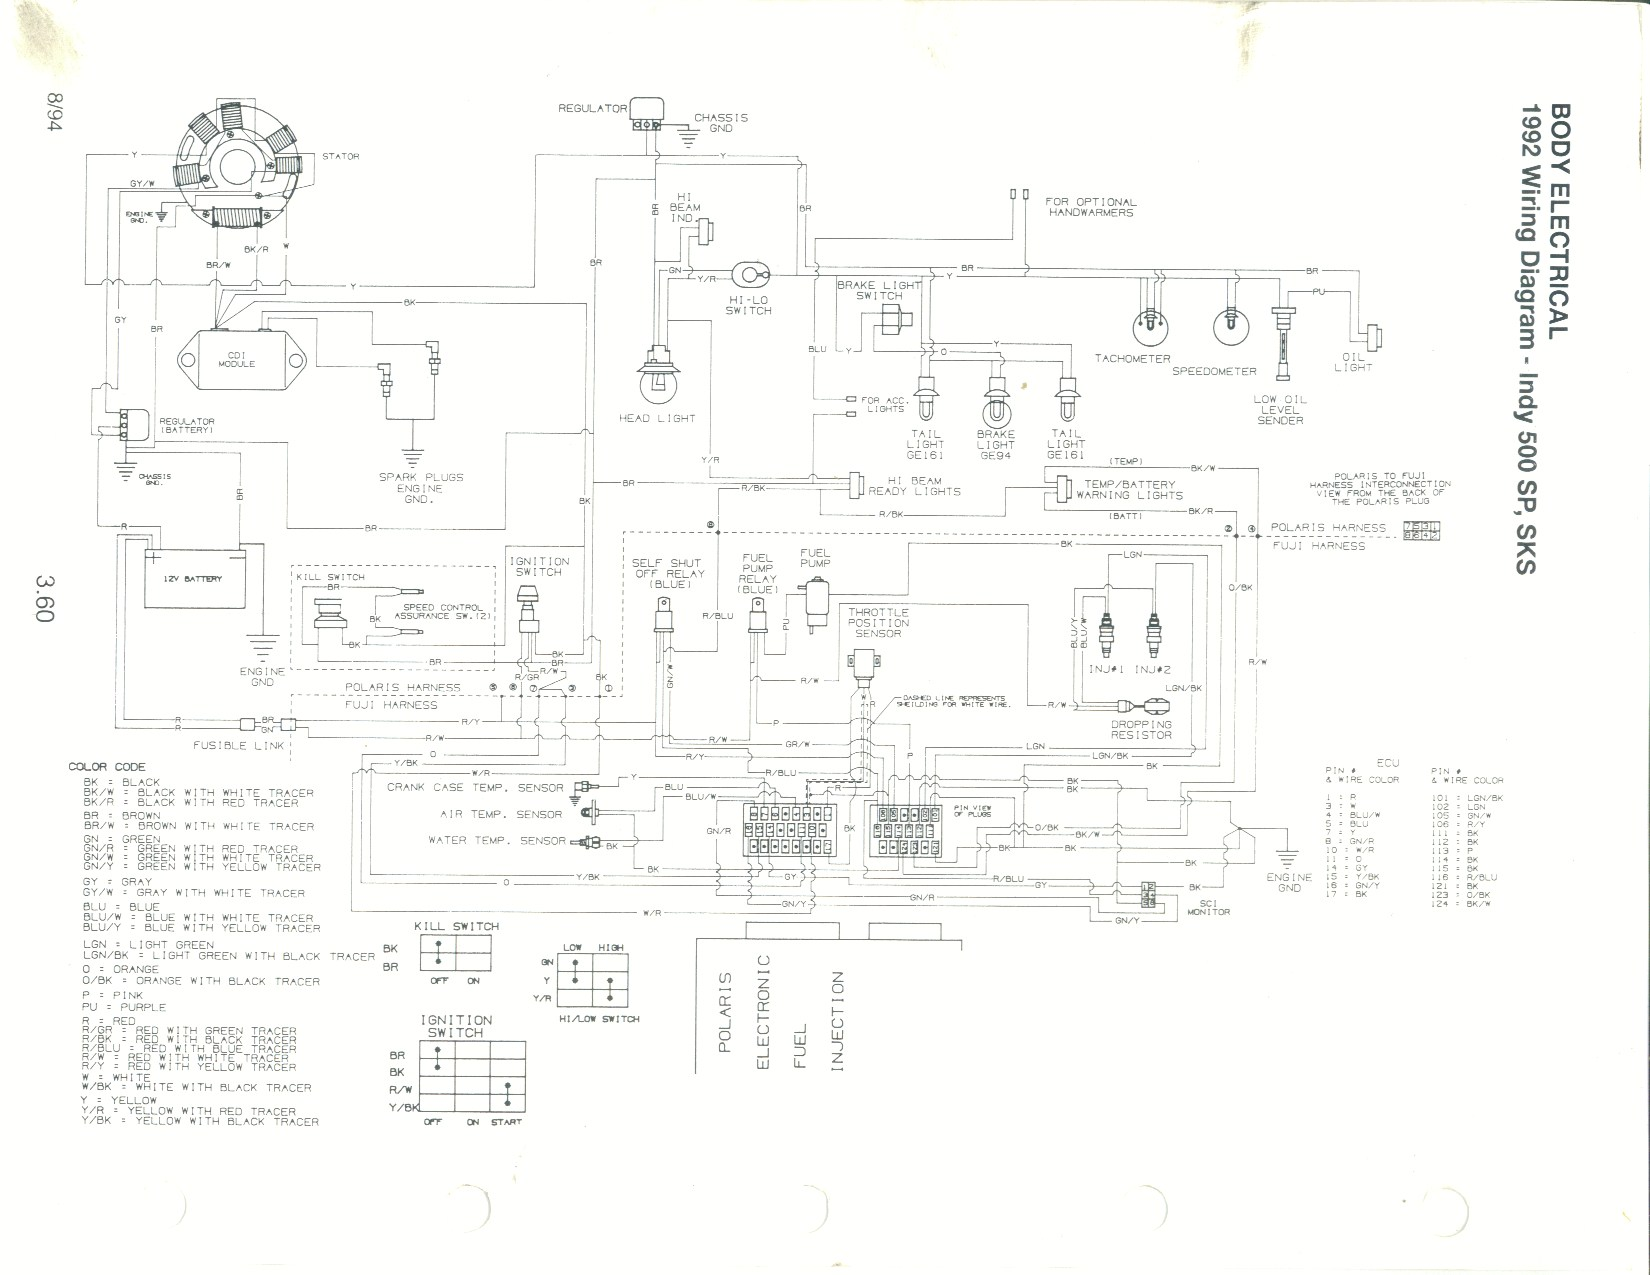 Wiring Diagram 2003 Polaris Classic. Parts. Wiring Diagram